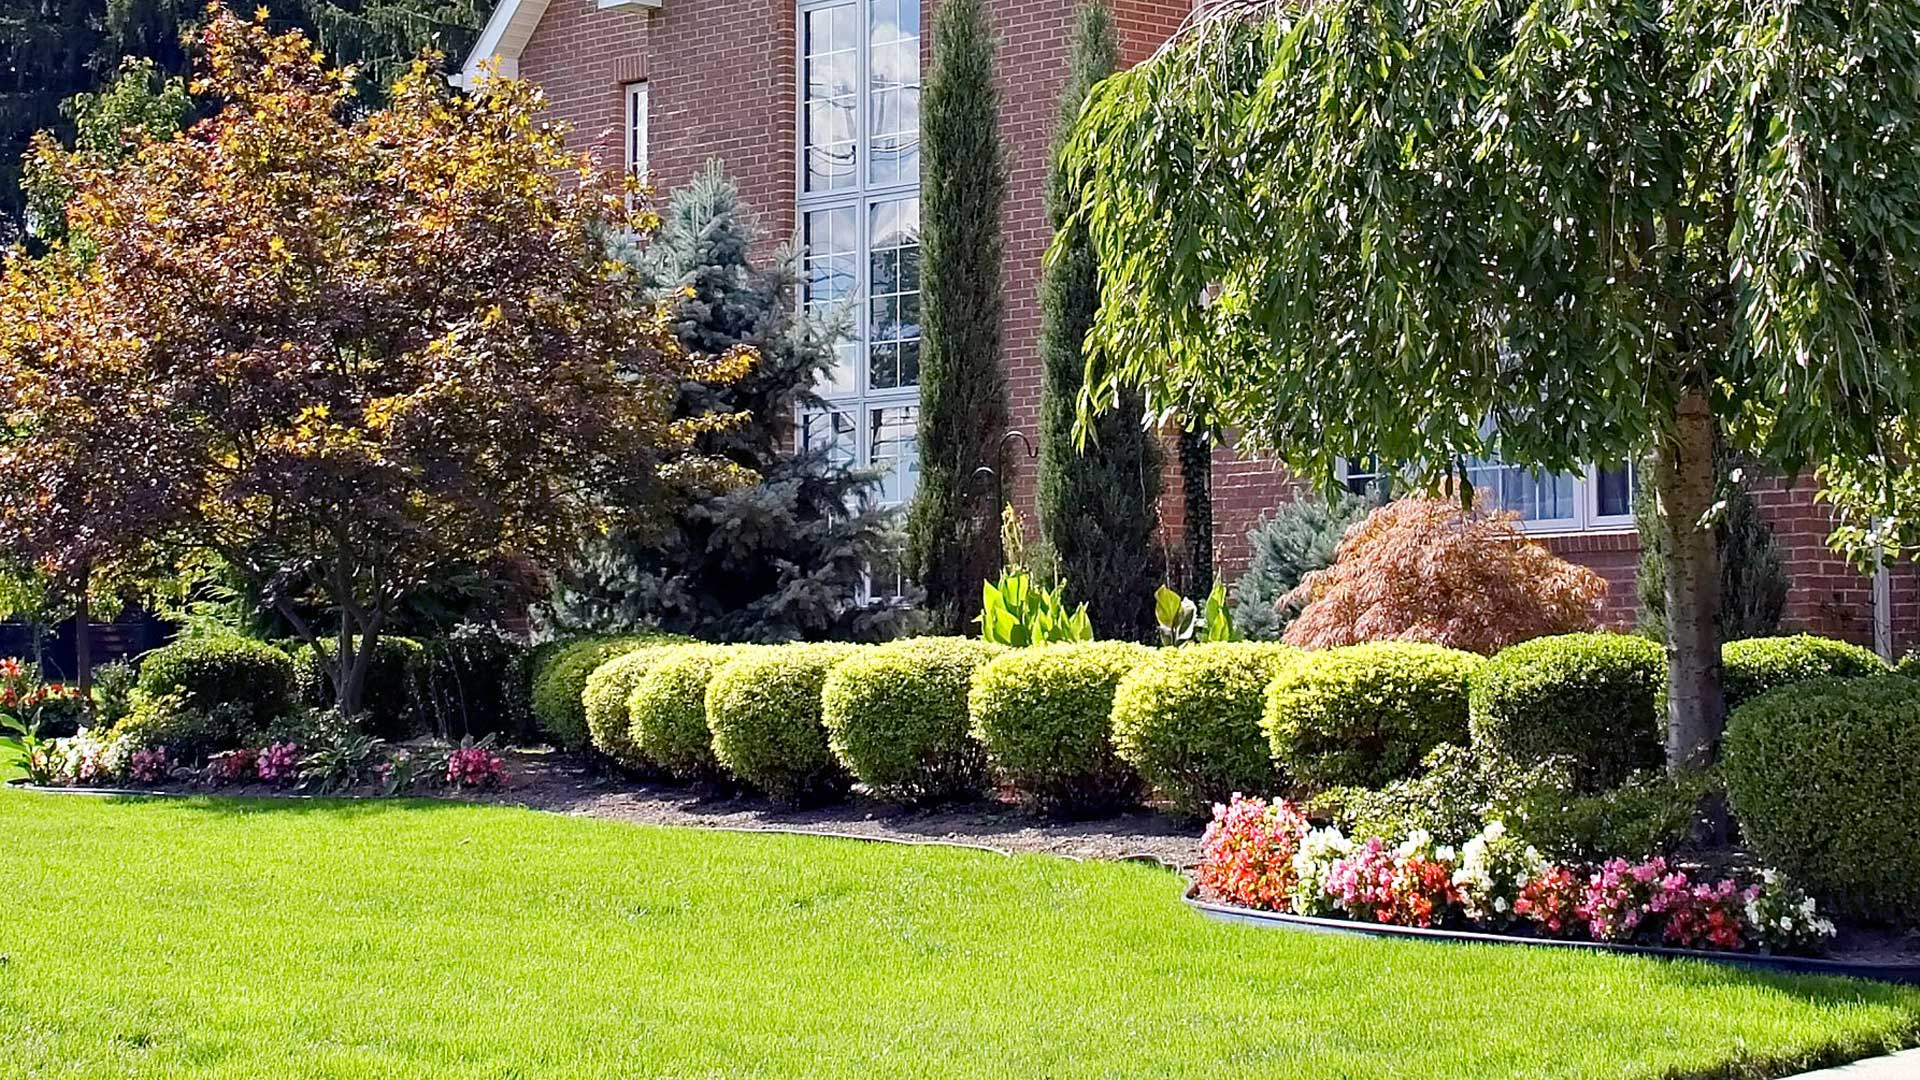 Landscaping with healthy plants that are properly cared for in New Providence, NJ.